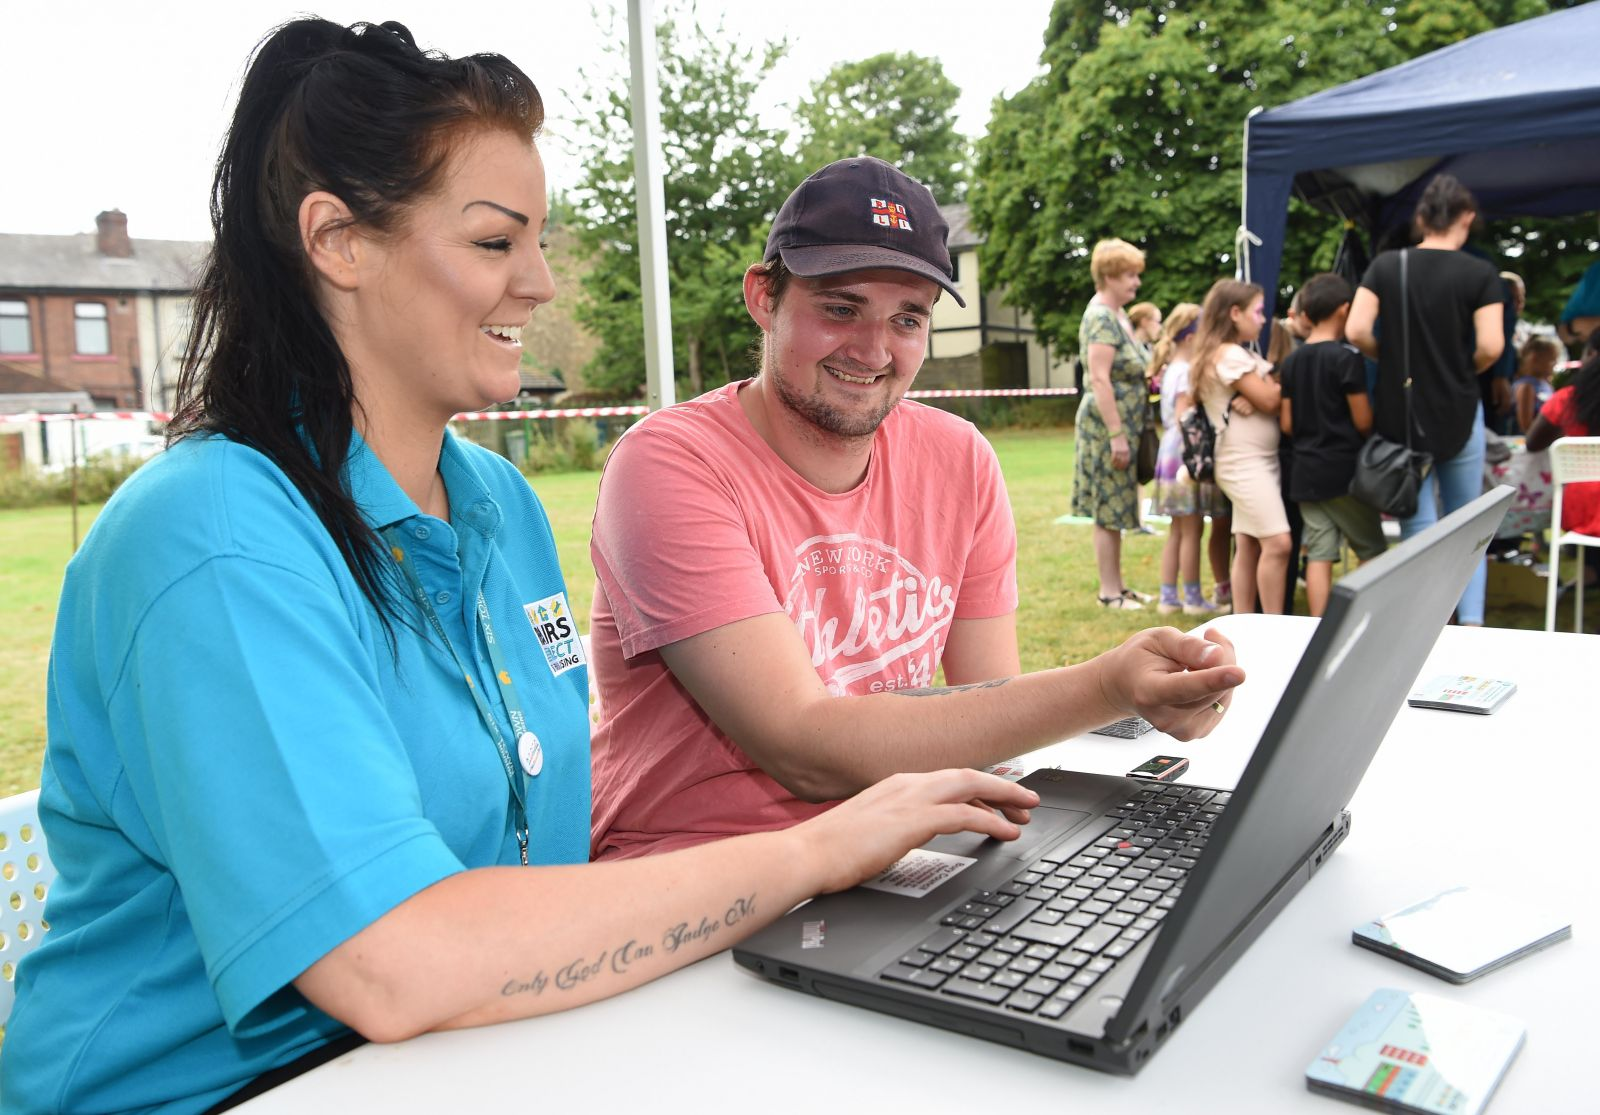 Digital training at Six Town Housing's Summer Roadshow